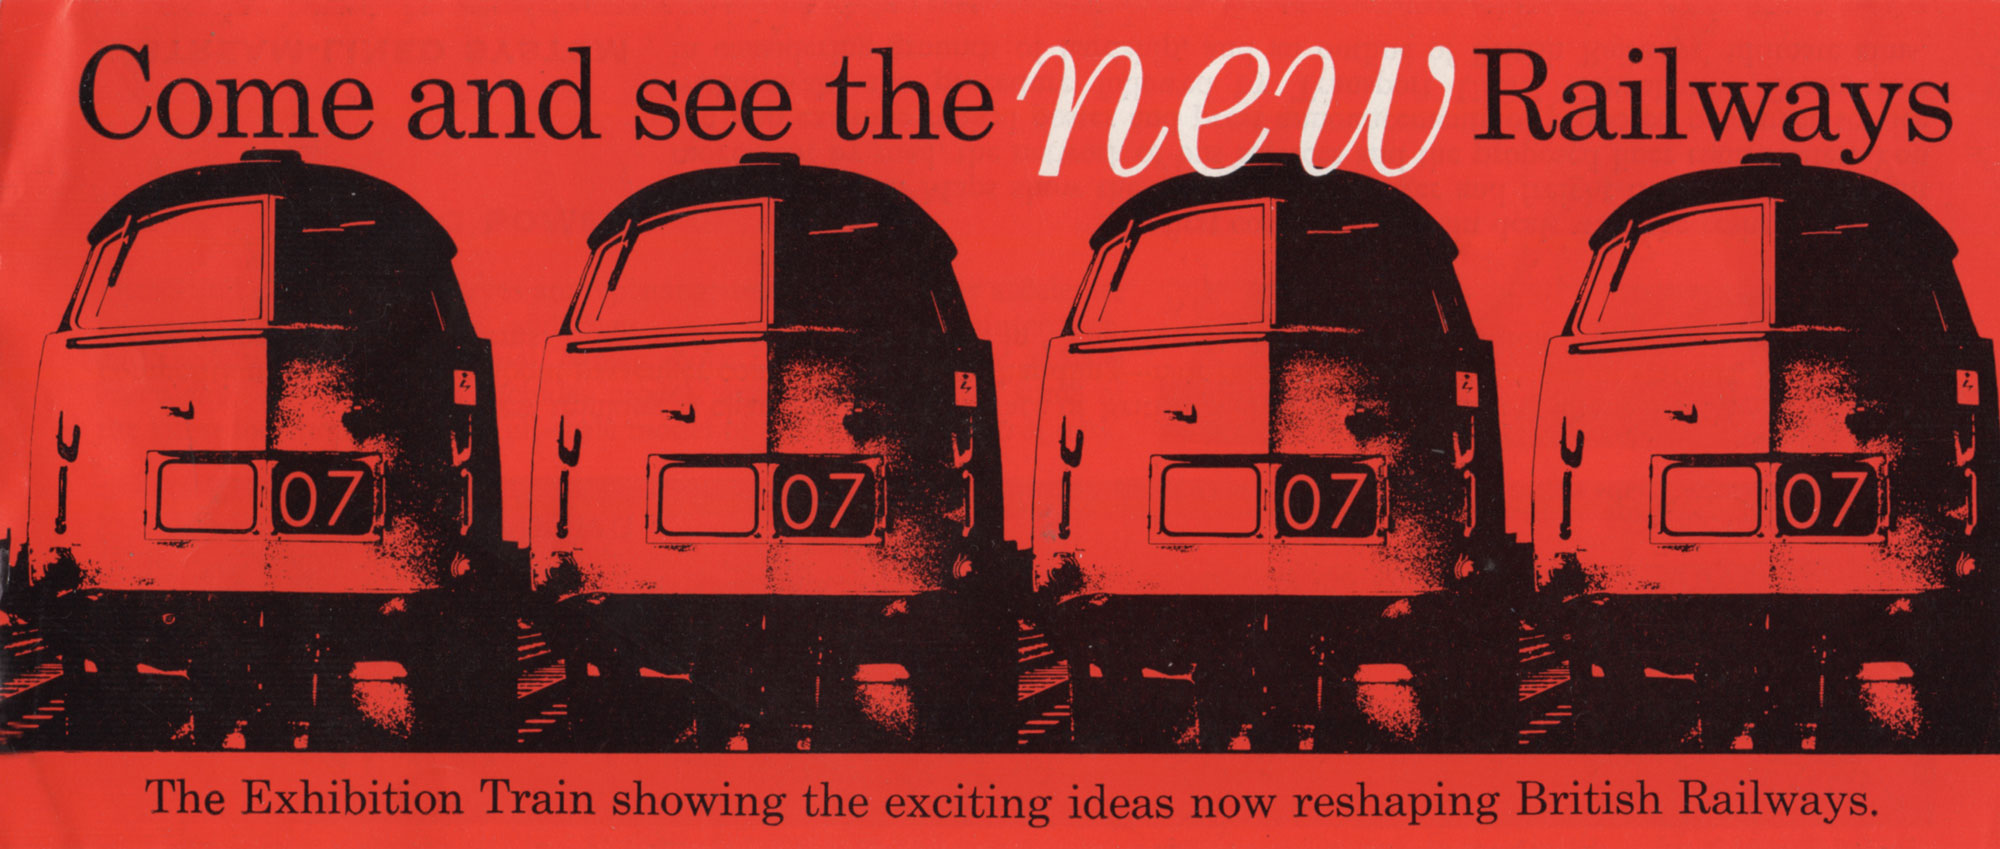 Promotional leaflet for the exhibition train taking British Rail design around Britain in 194